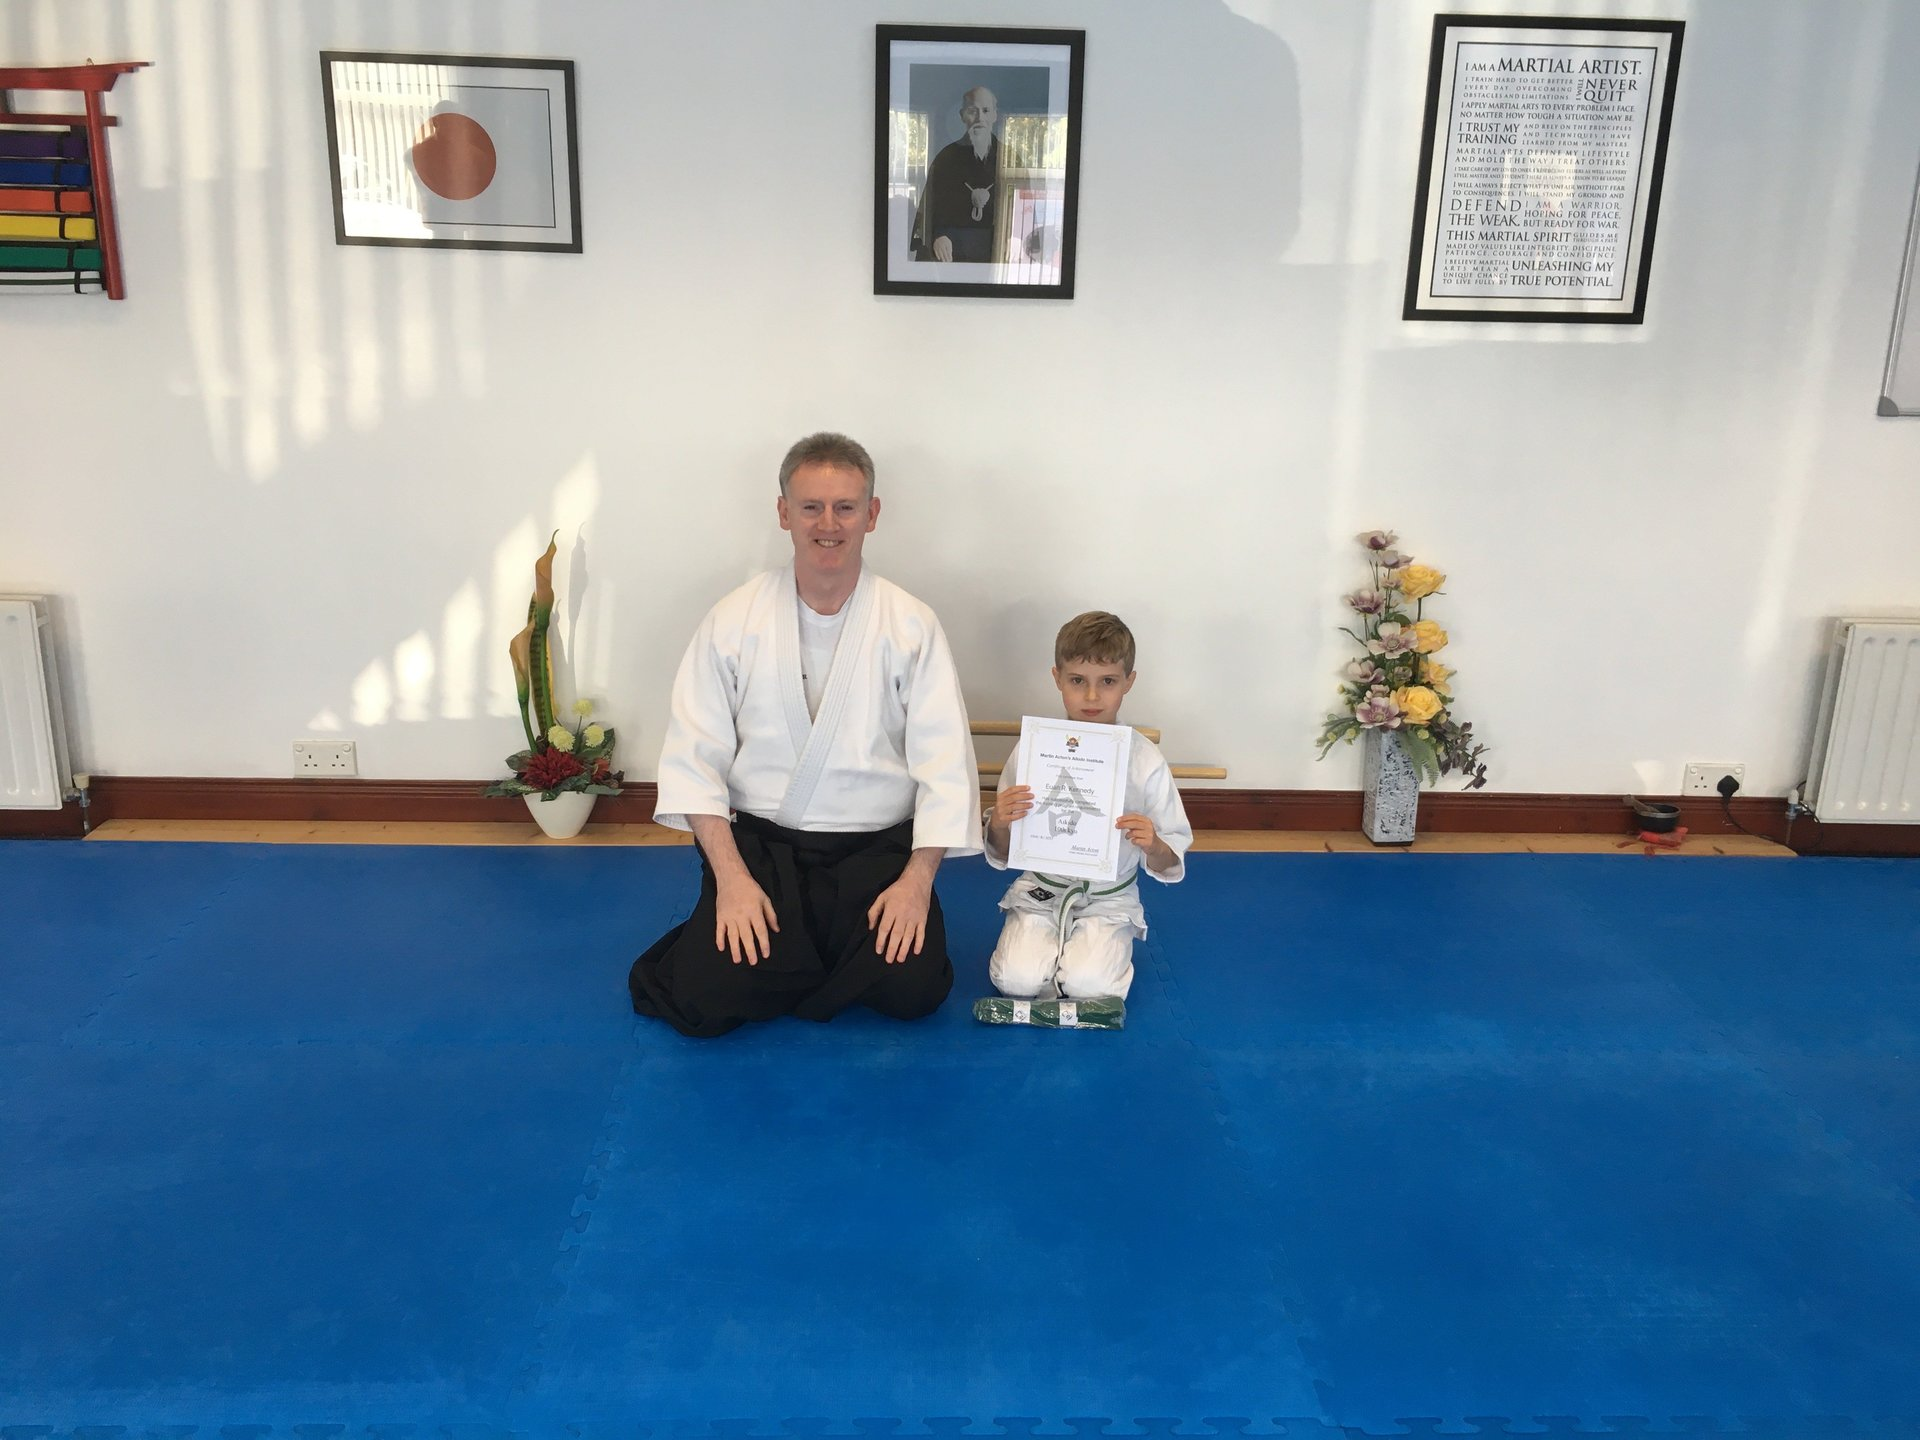 Euan R. Kennedy reaching his Aikido 10th kyu Green belt certification with Martin Acton sensei